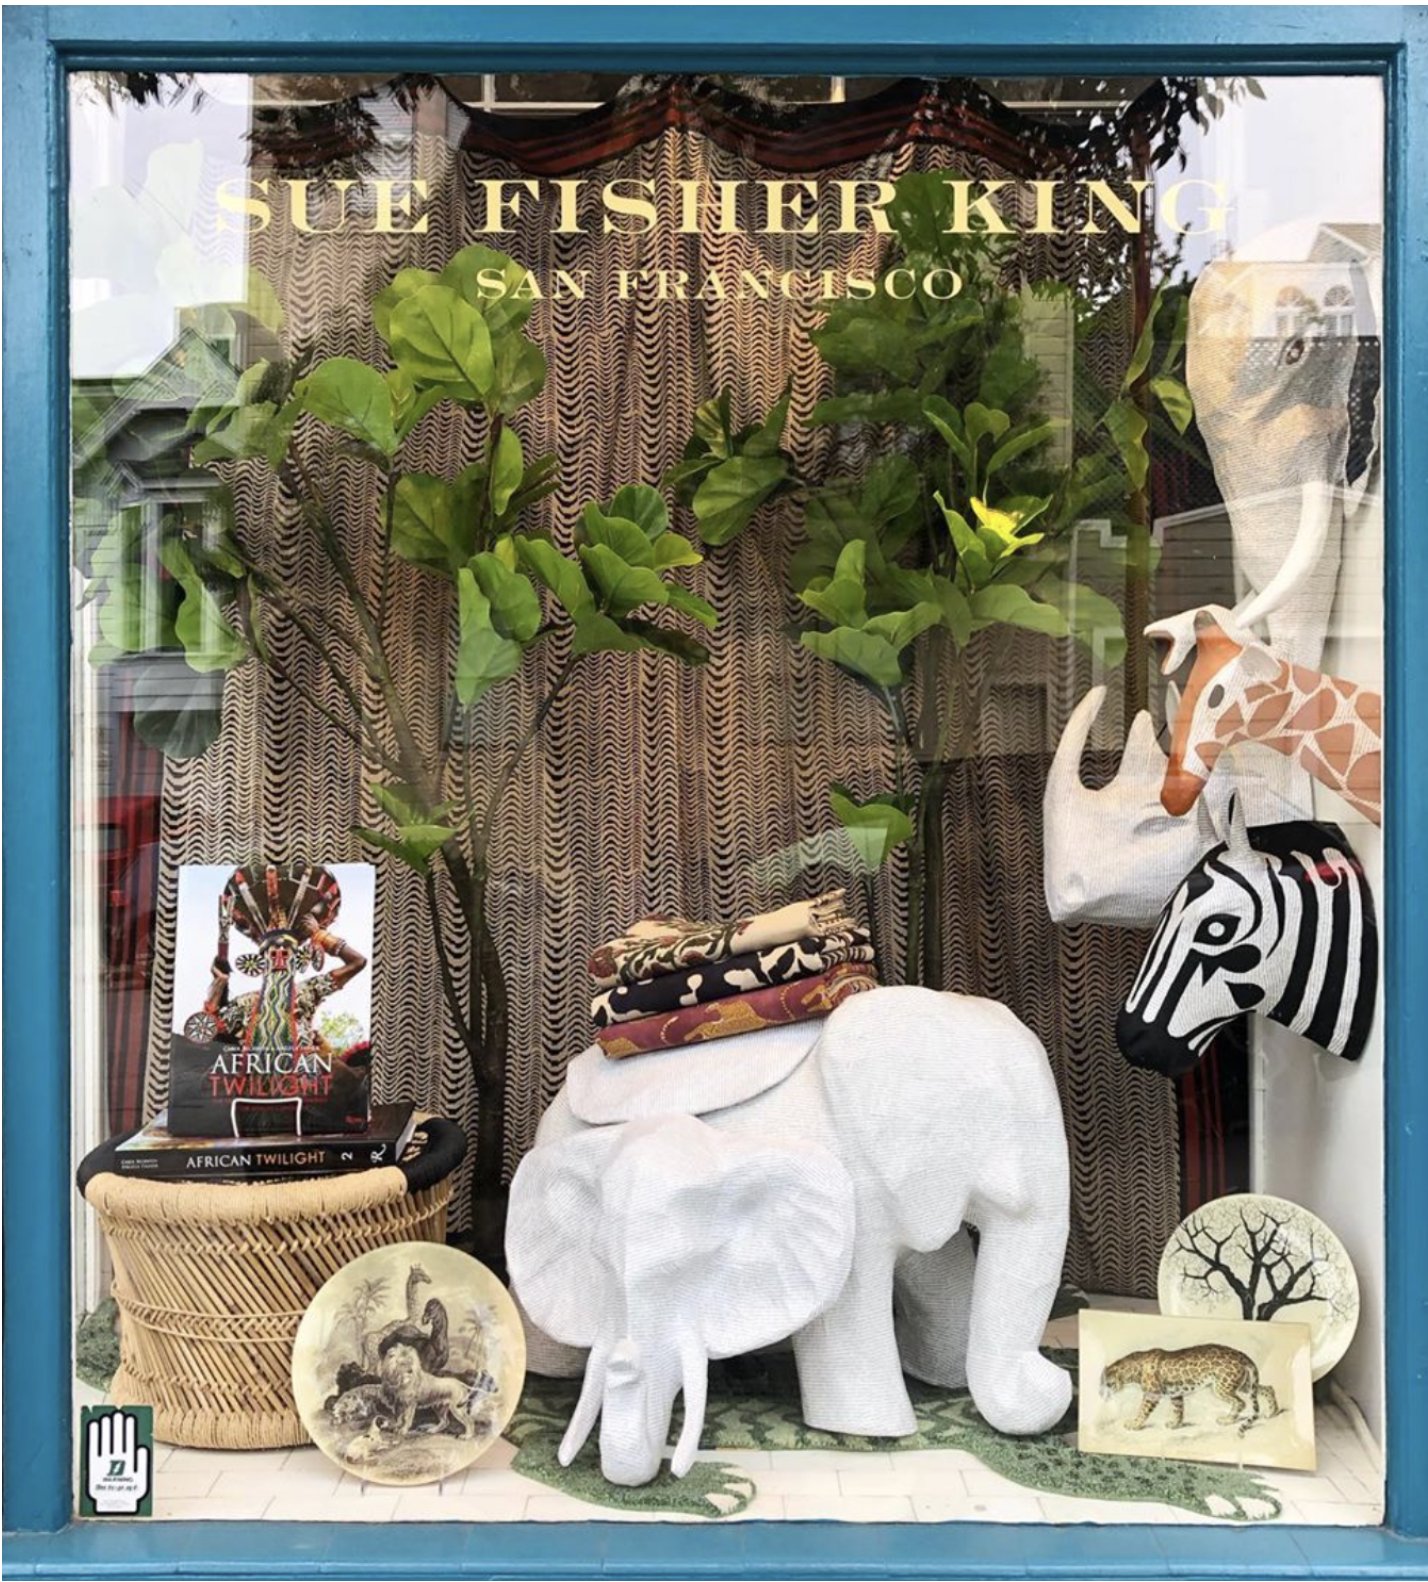 Sue Fisher King - A San Francisco landmark for 40 years, SFK offers a curated story of many journeys around the world. A destination to discover artisanal objects and accessories sourced with a passion for uncovering lovely and unique treasures with a touch of whimsy from tabletop to textiles.Must Buy: adorable baby clothes, Arcades & Mak handmade French dinnerware, Porthault handkerchiefsvisit website